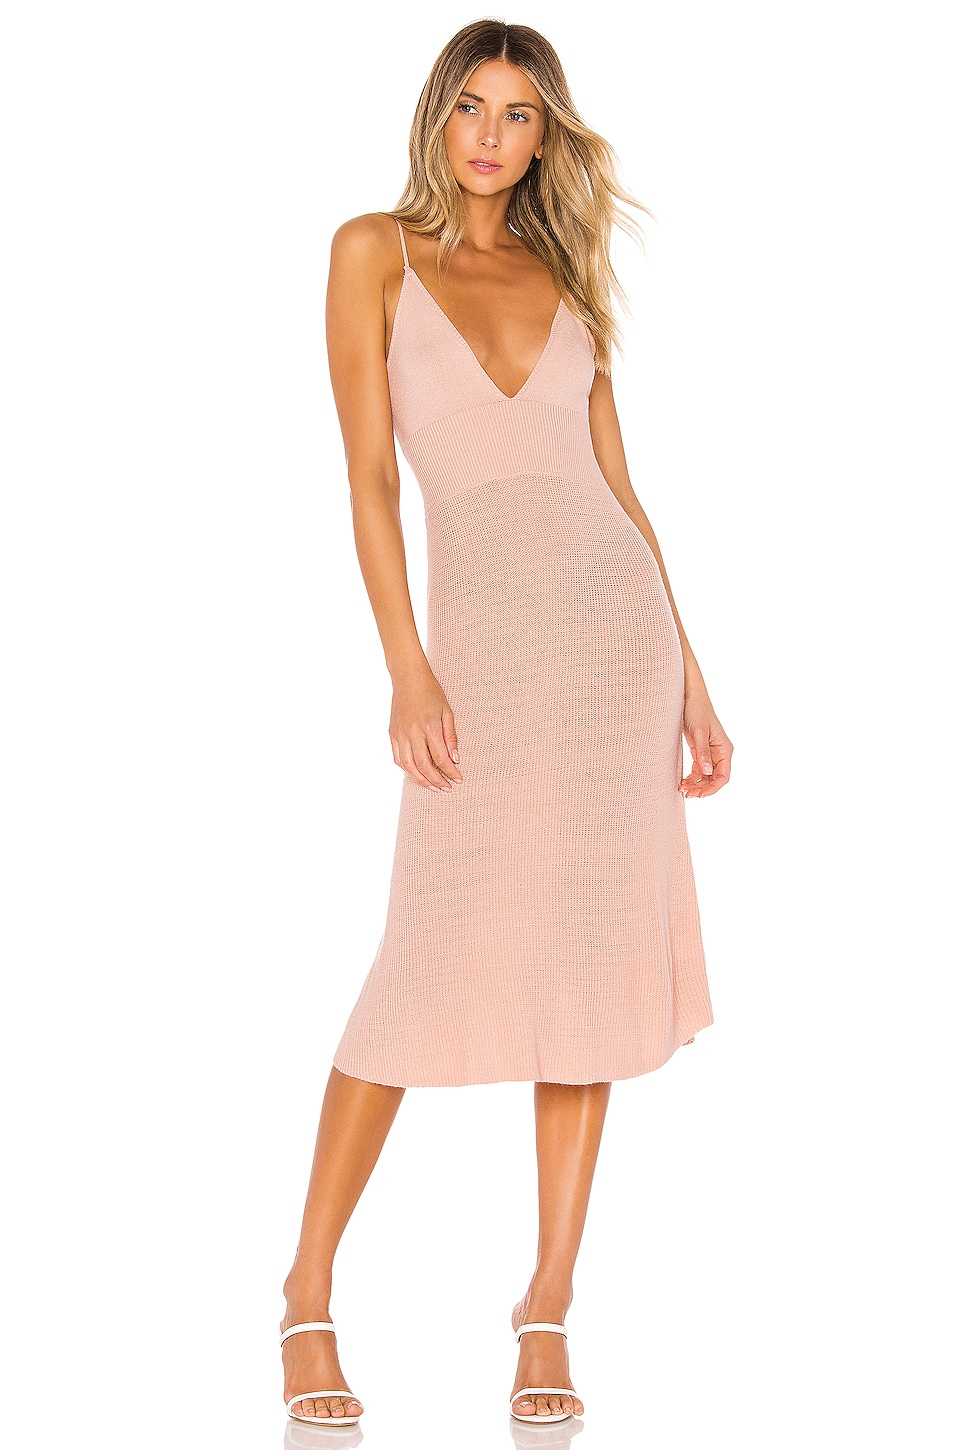 L'Academie Hally Dress in Cool Peach